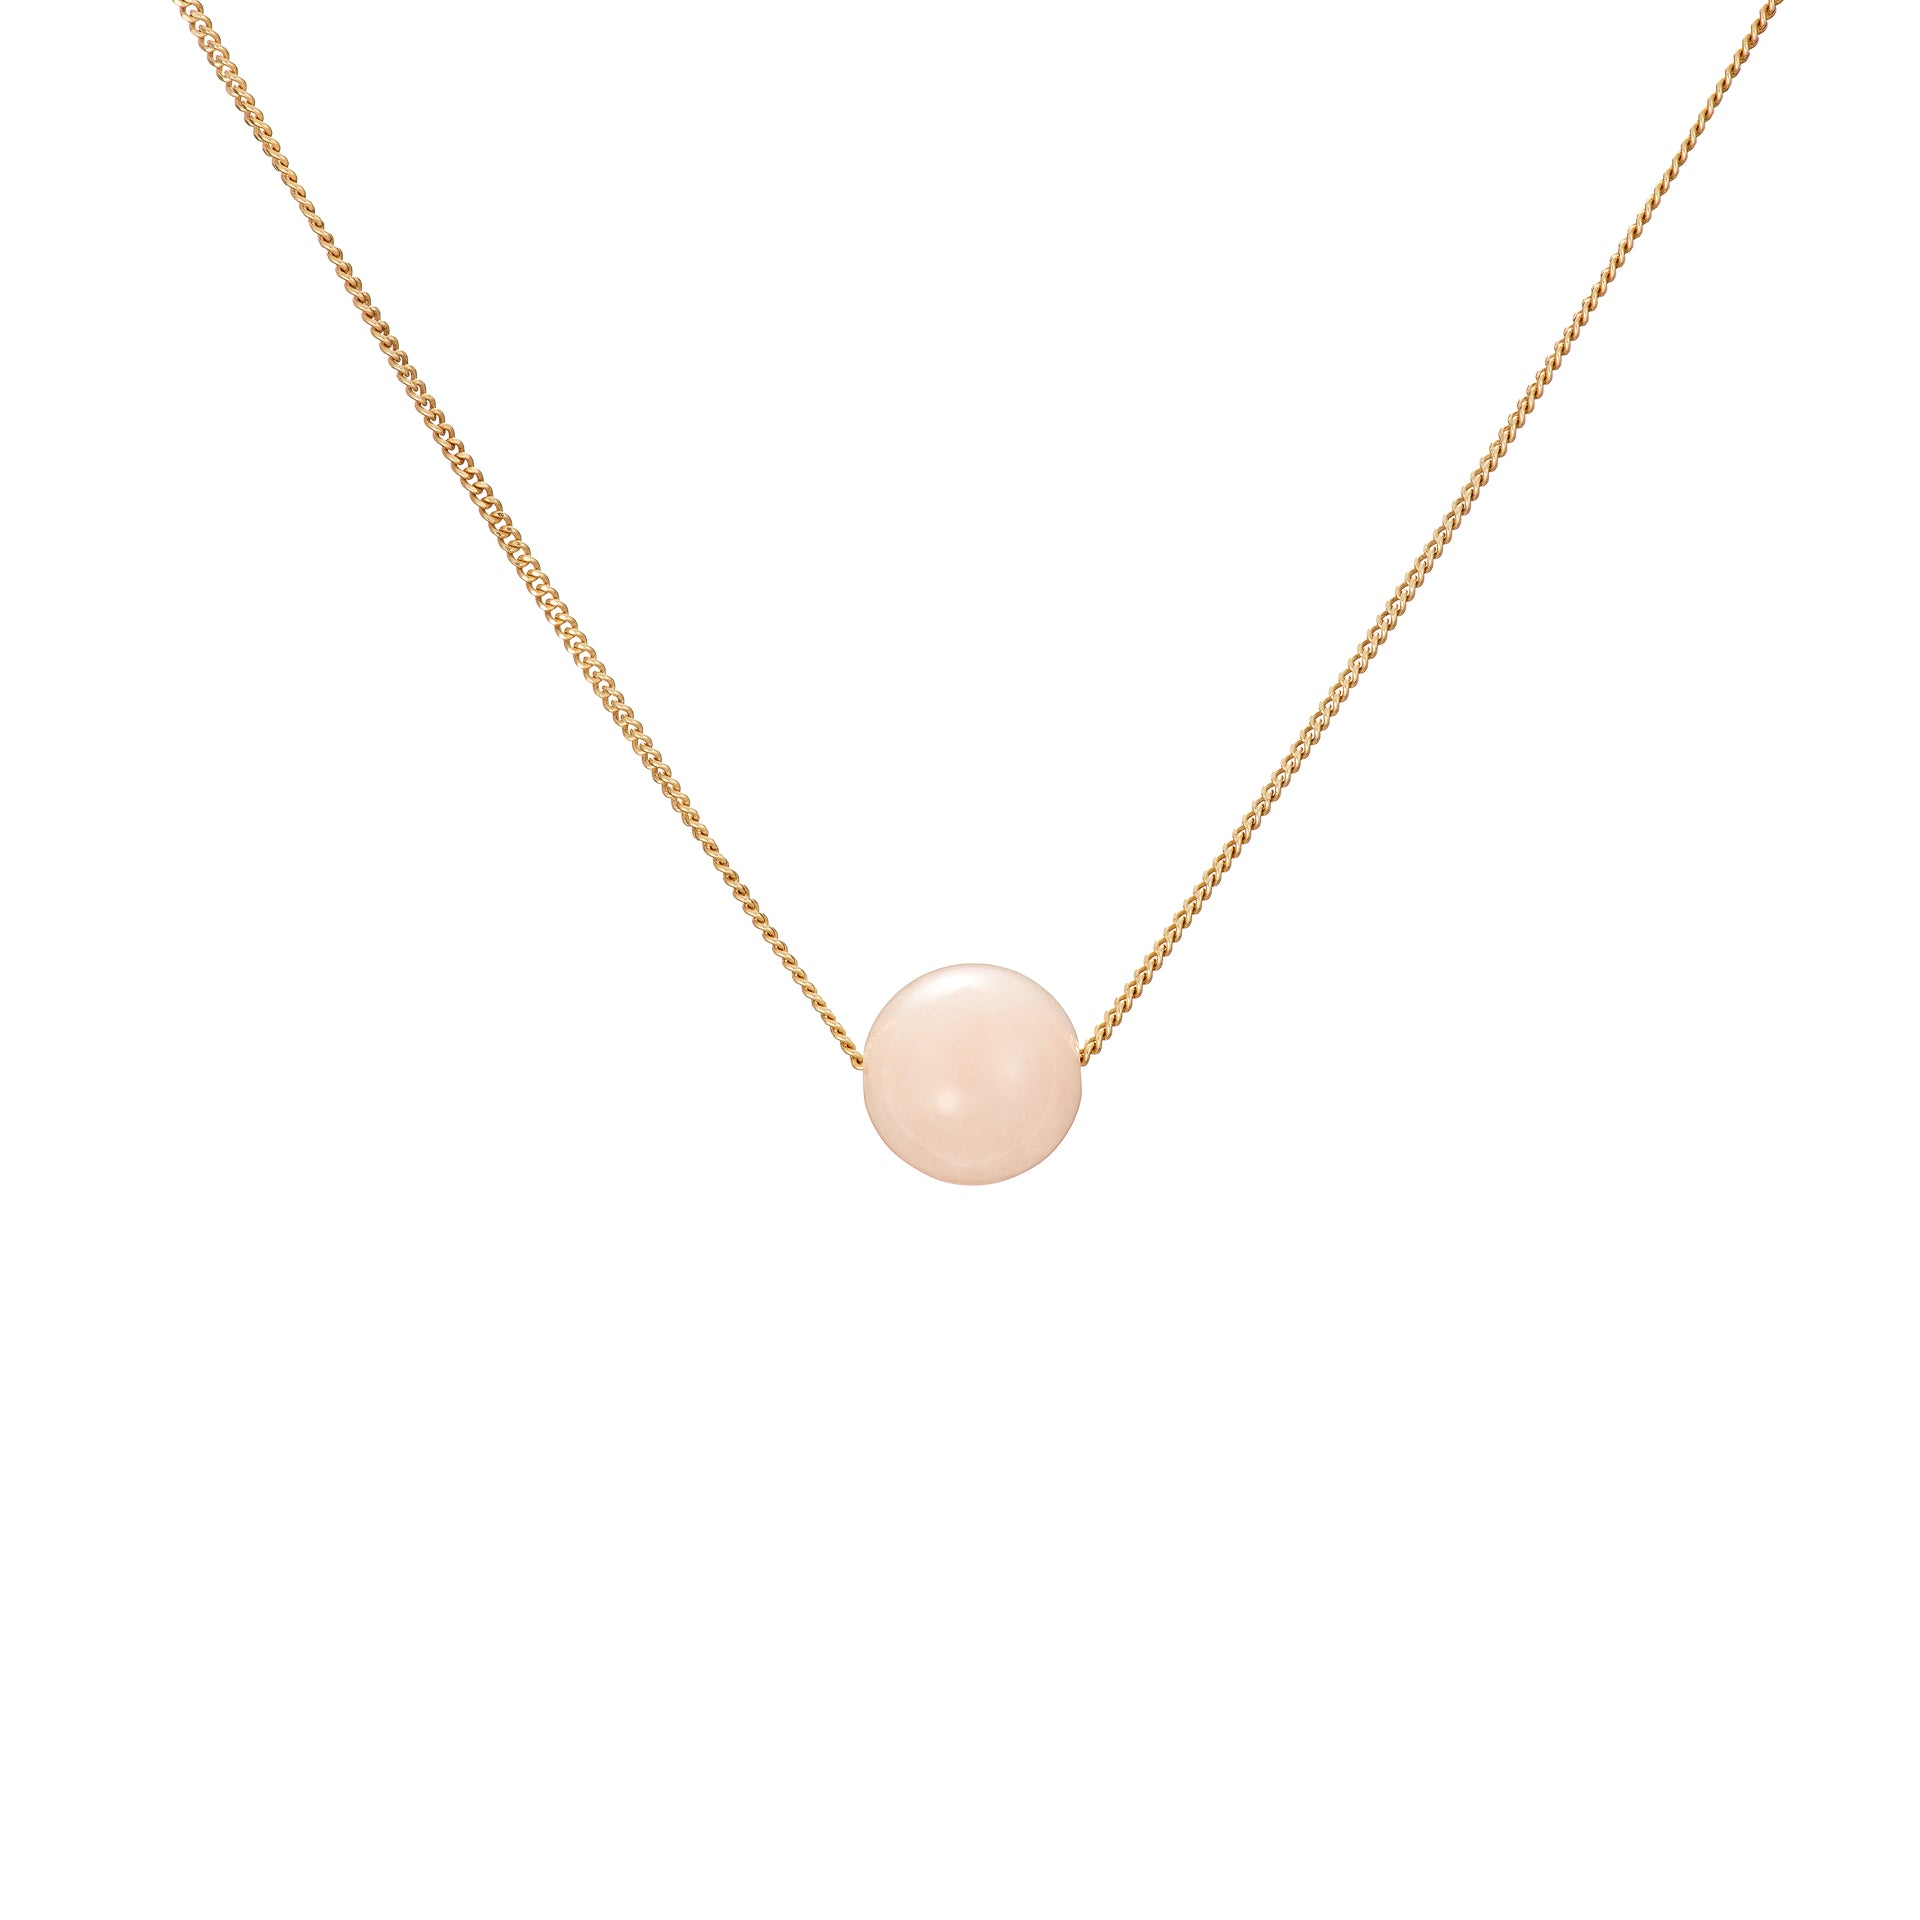 Solo Necklace - Pink Beryl (Morganite)